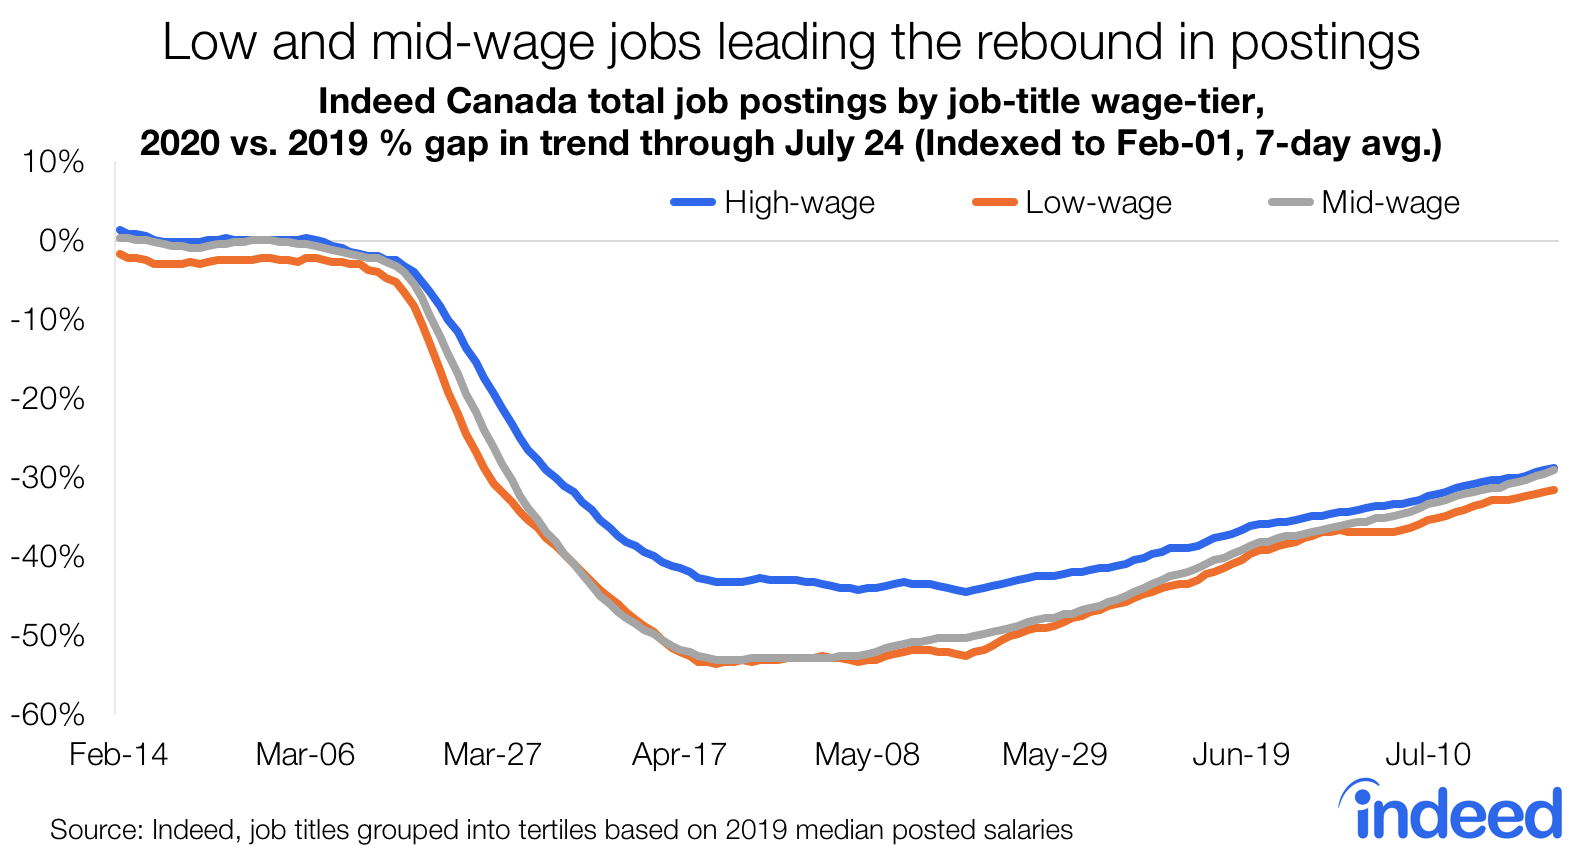 Low to mid wage jobs leading the rebound in postings